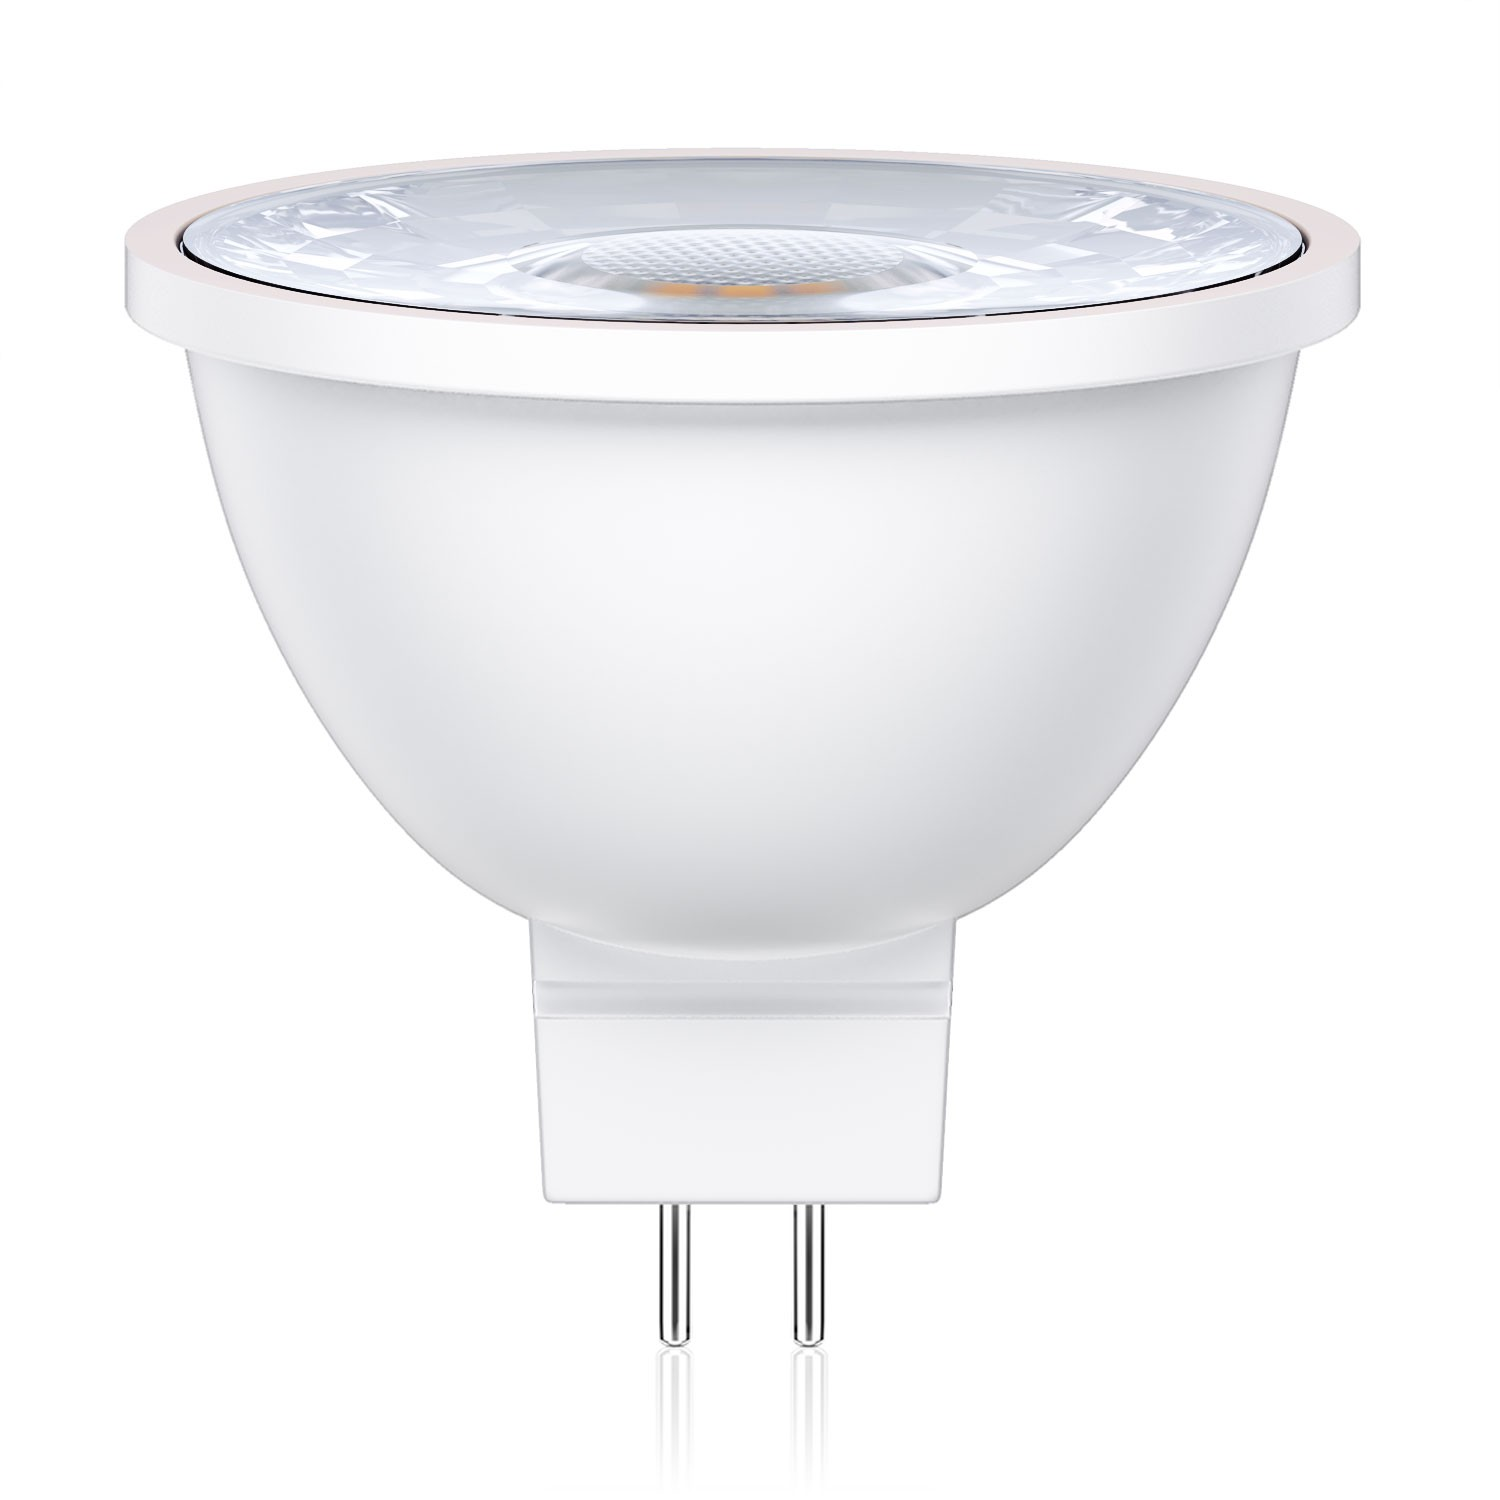 Gu53 led lampe mr16 5w 33w 300lm 30 warm wei von ledscom gu53 led lampe mr16 5w 33w 300lm 30 warm wei parisarafo Image collections